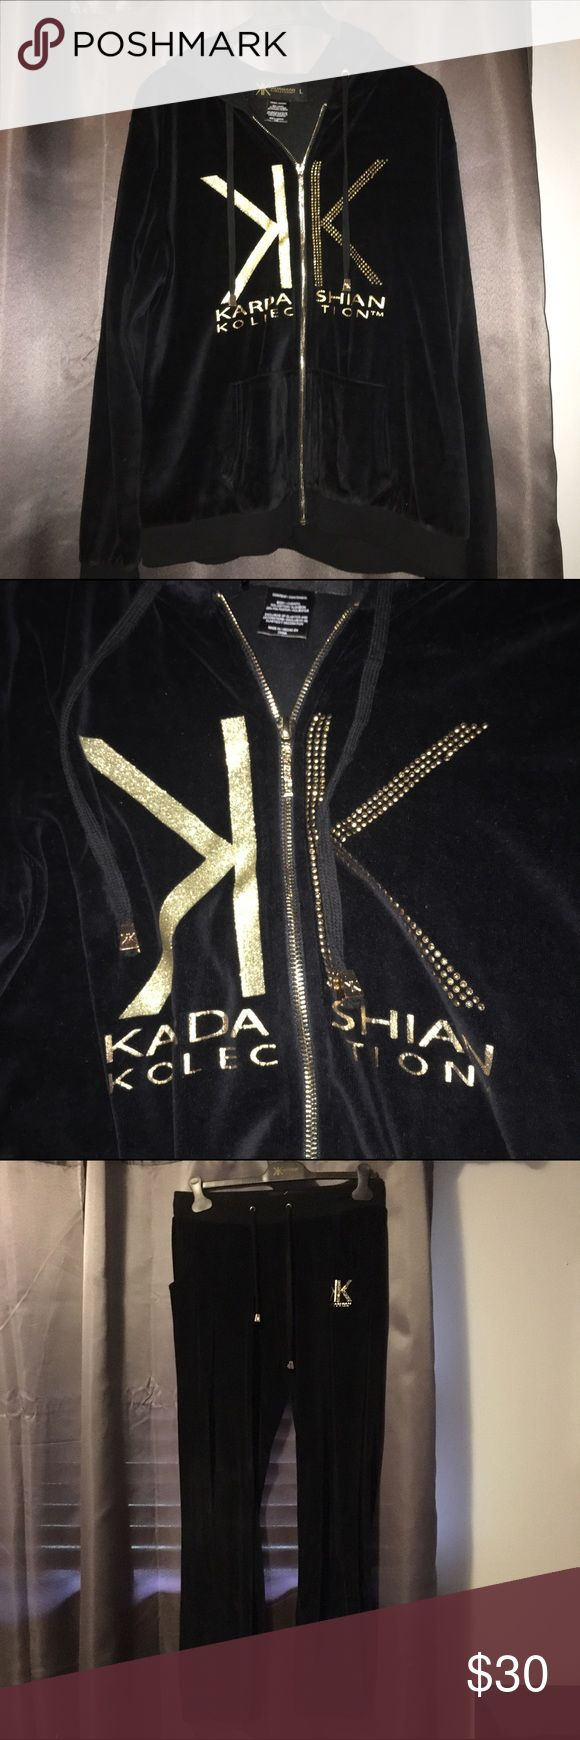 Kardashian Kollection sweat suit Never worn Kardashian Kollection sweat suit. Black and gold and still on hangers that it was bought on! Very comfy and stylish Kardashian Kollection Other